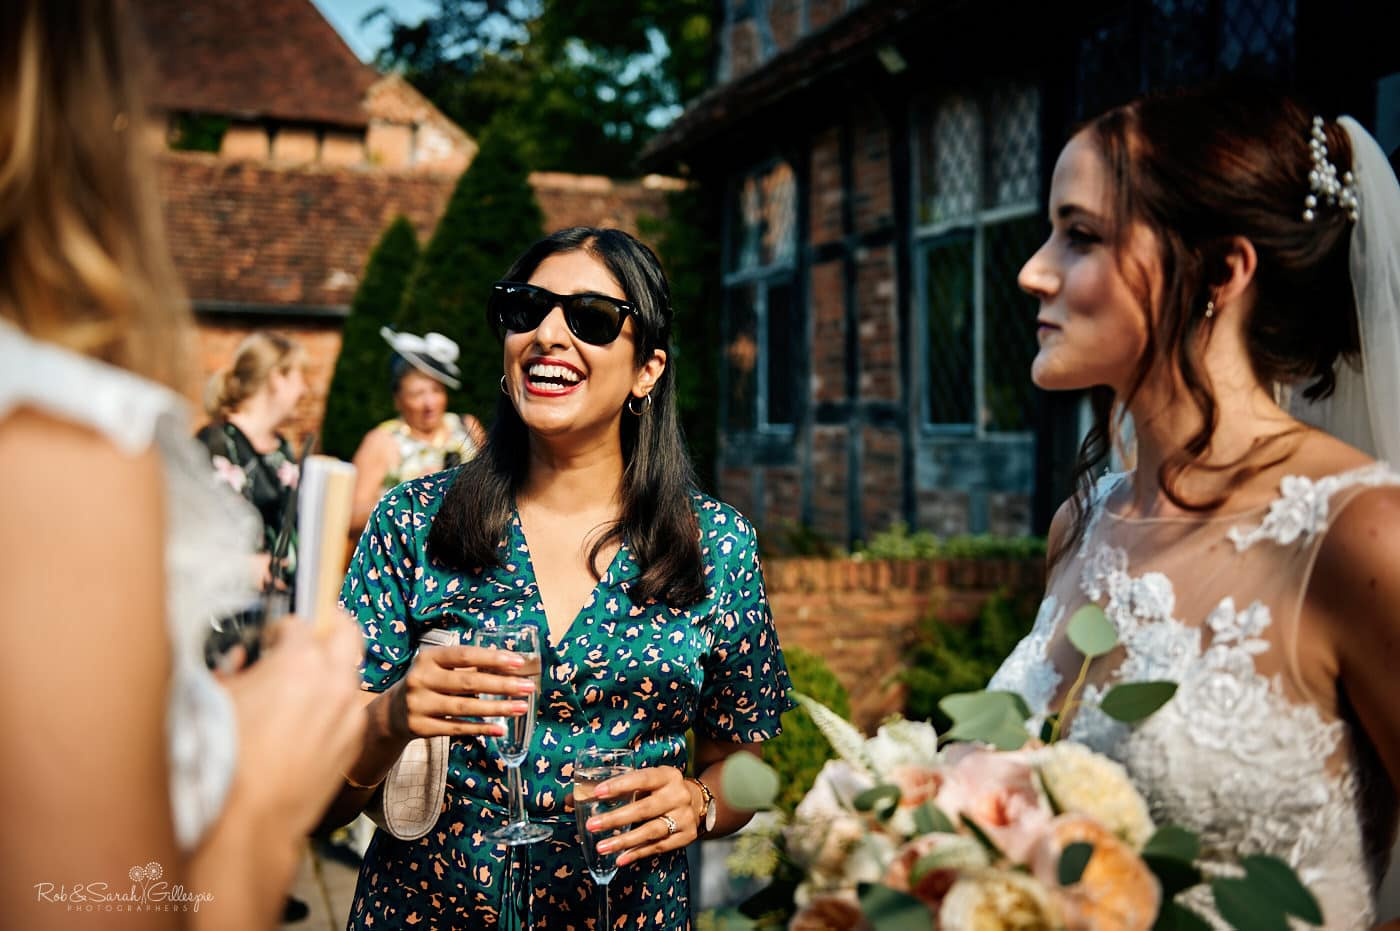 Wedding guests chat to bride during drinks reception